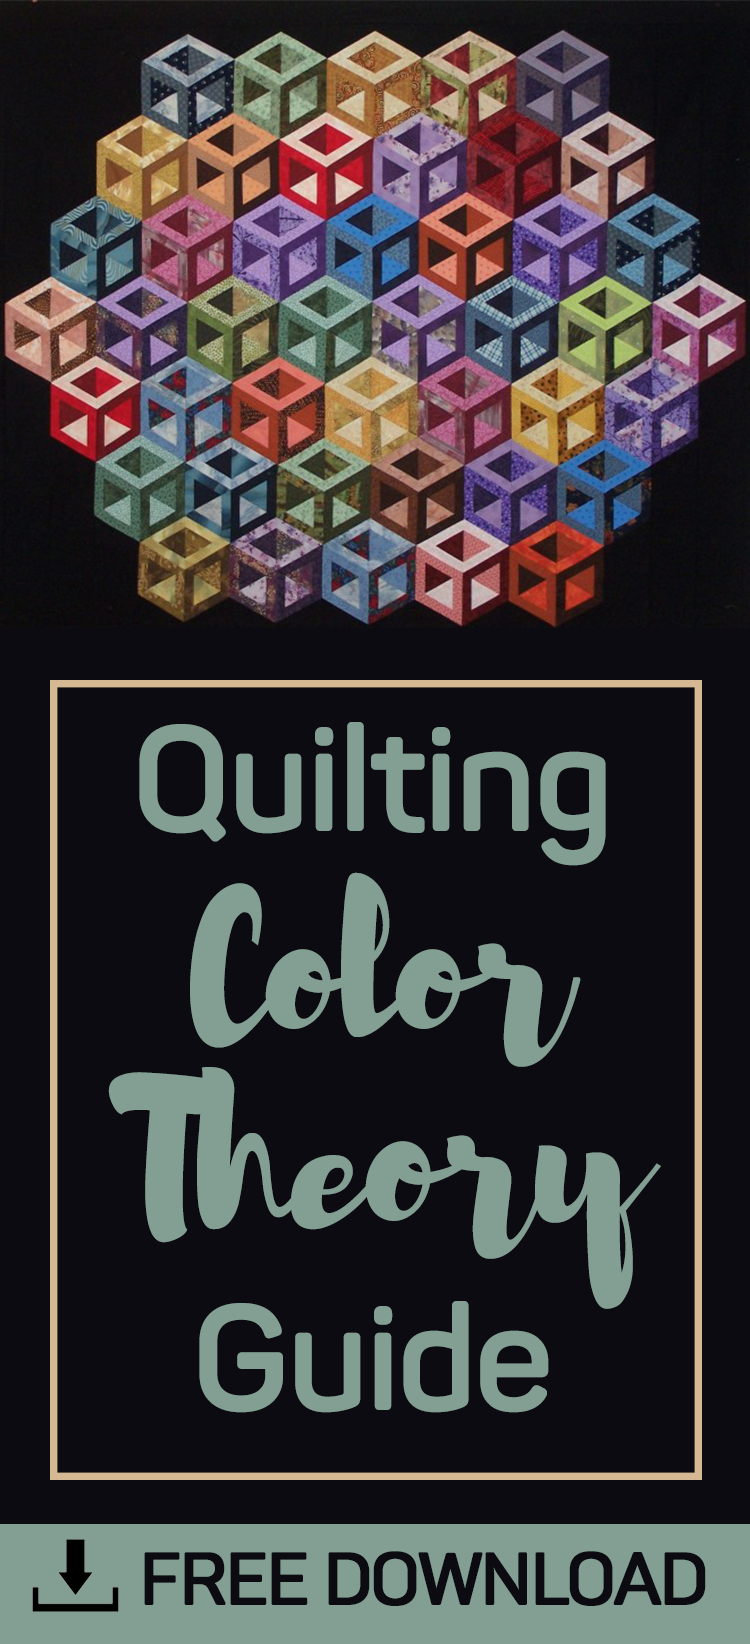 In this guide, you will learn the basic principles of color theory and how to practically apply them to your own quilt work. This guide offers easy-to-follow tips that will help you select colors that are well balanced and pleasing to the eye.